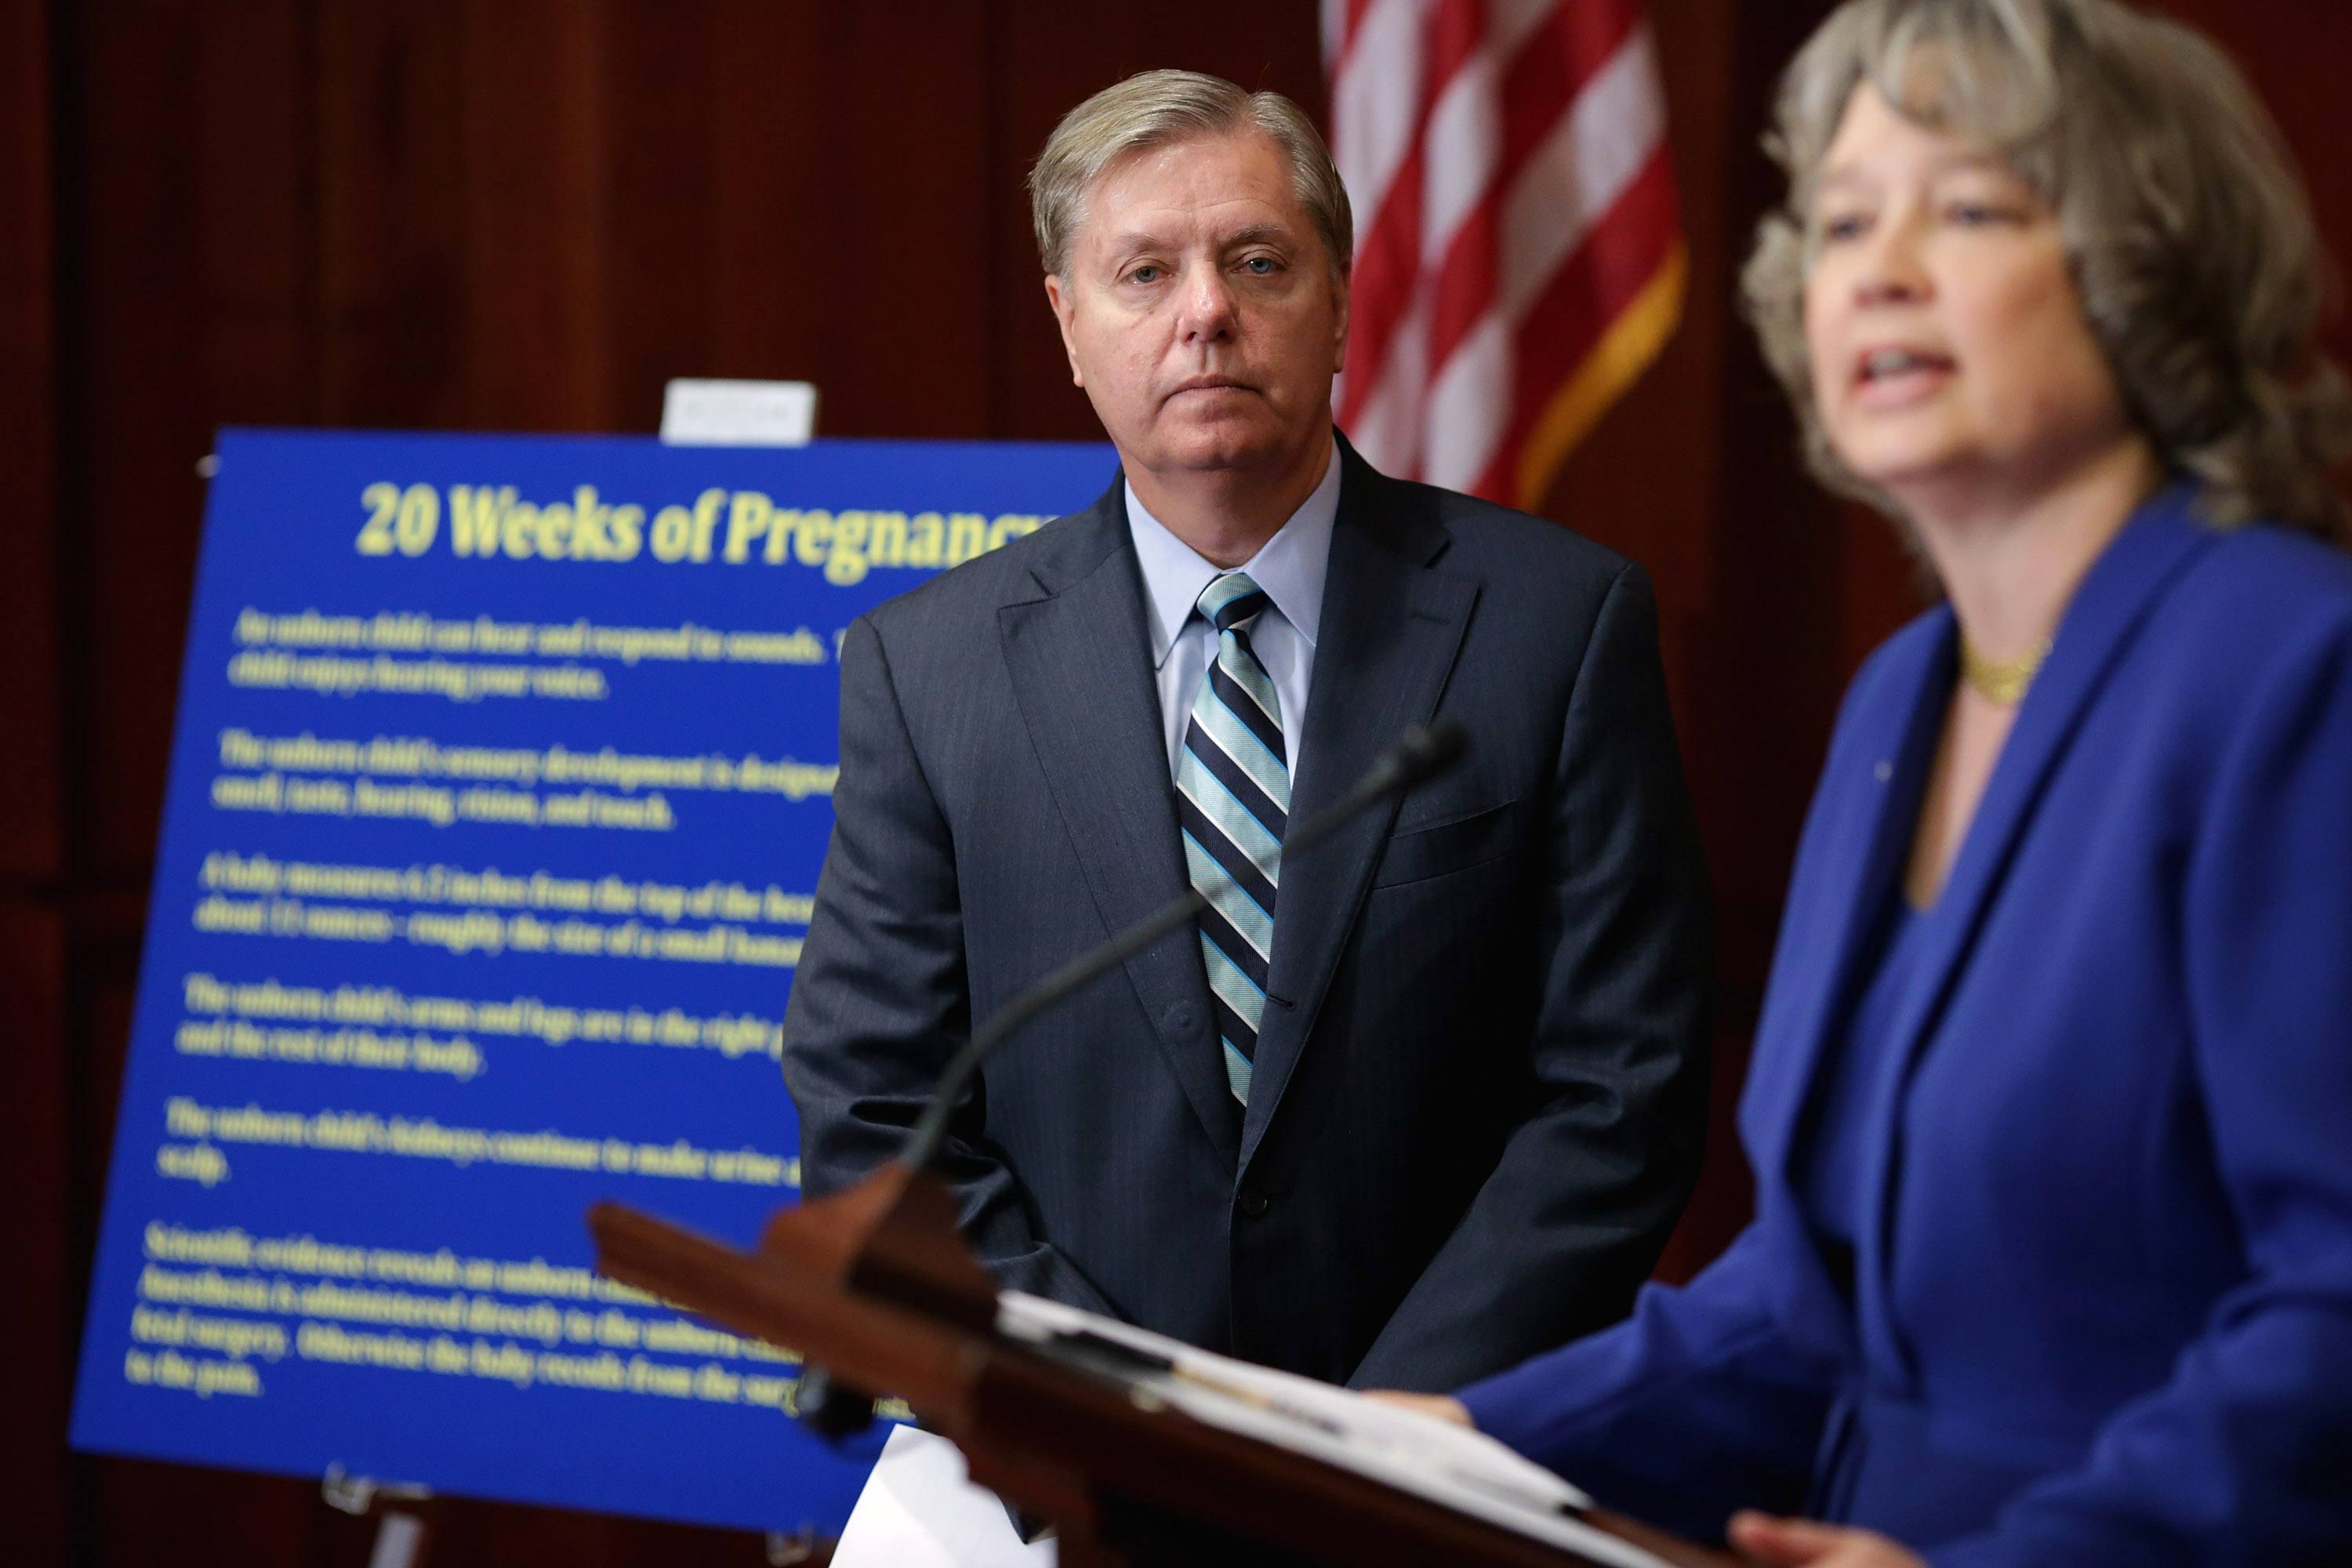 Sen. Lindsey Graham (R-SC) (L) listens to National Right to Life Committee President Carol Tobias speak while standing infront of a board that explains the Pain-Capable bill of banning abortions after 20 weeks